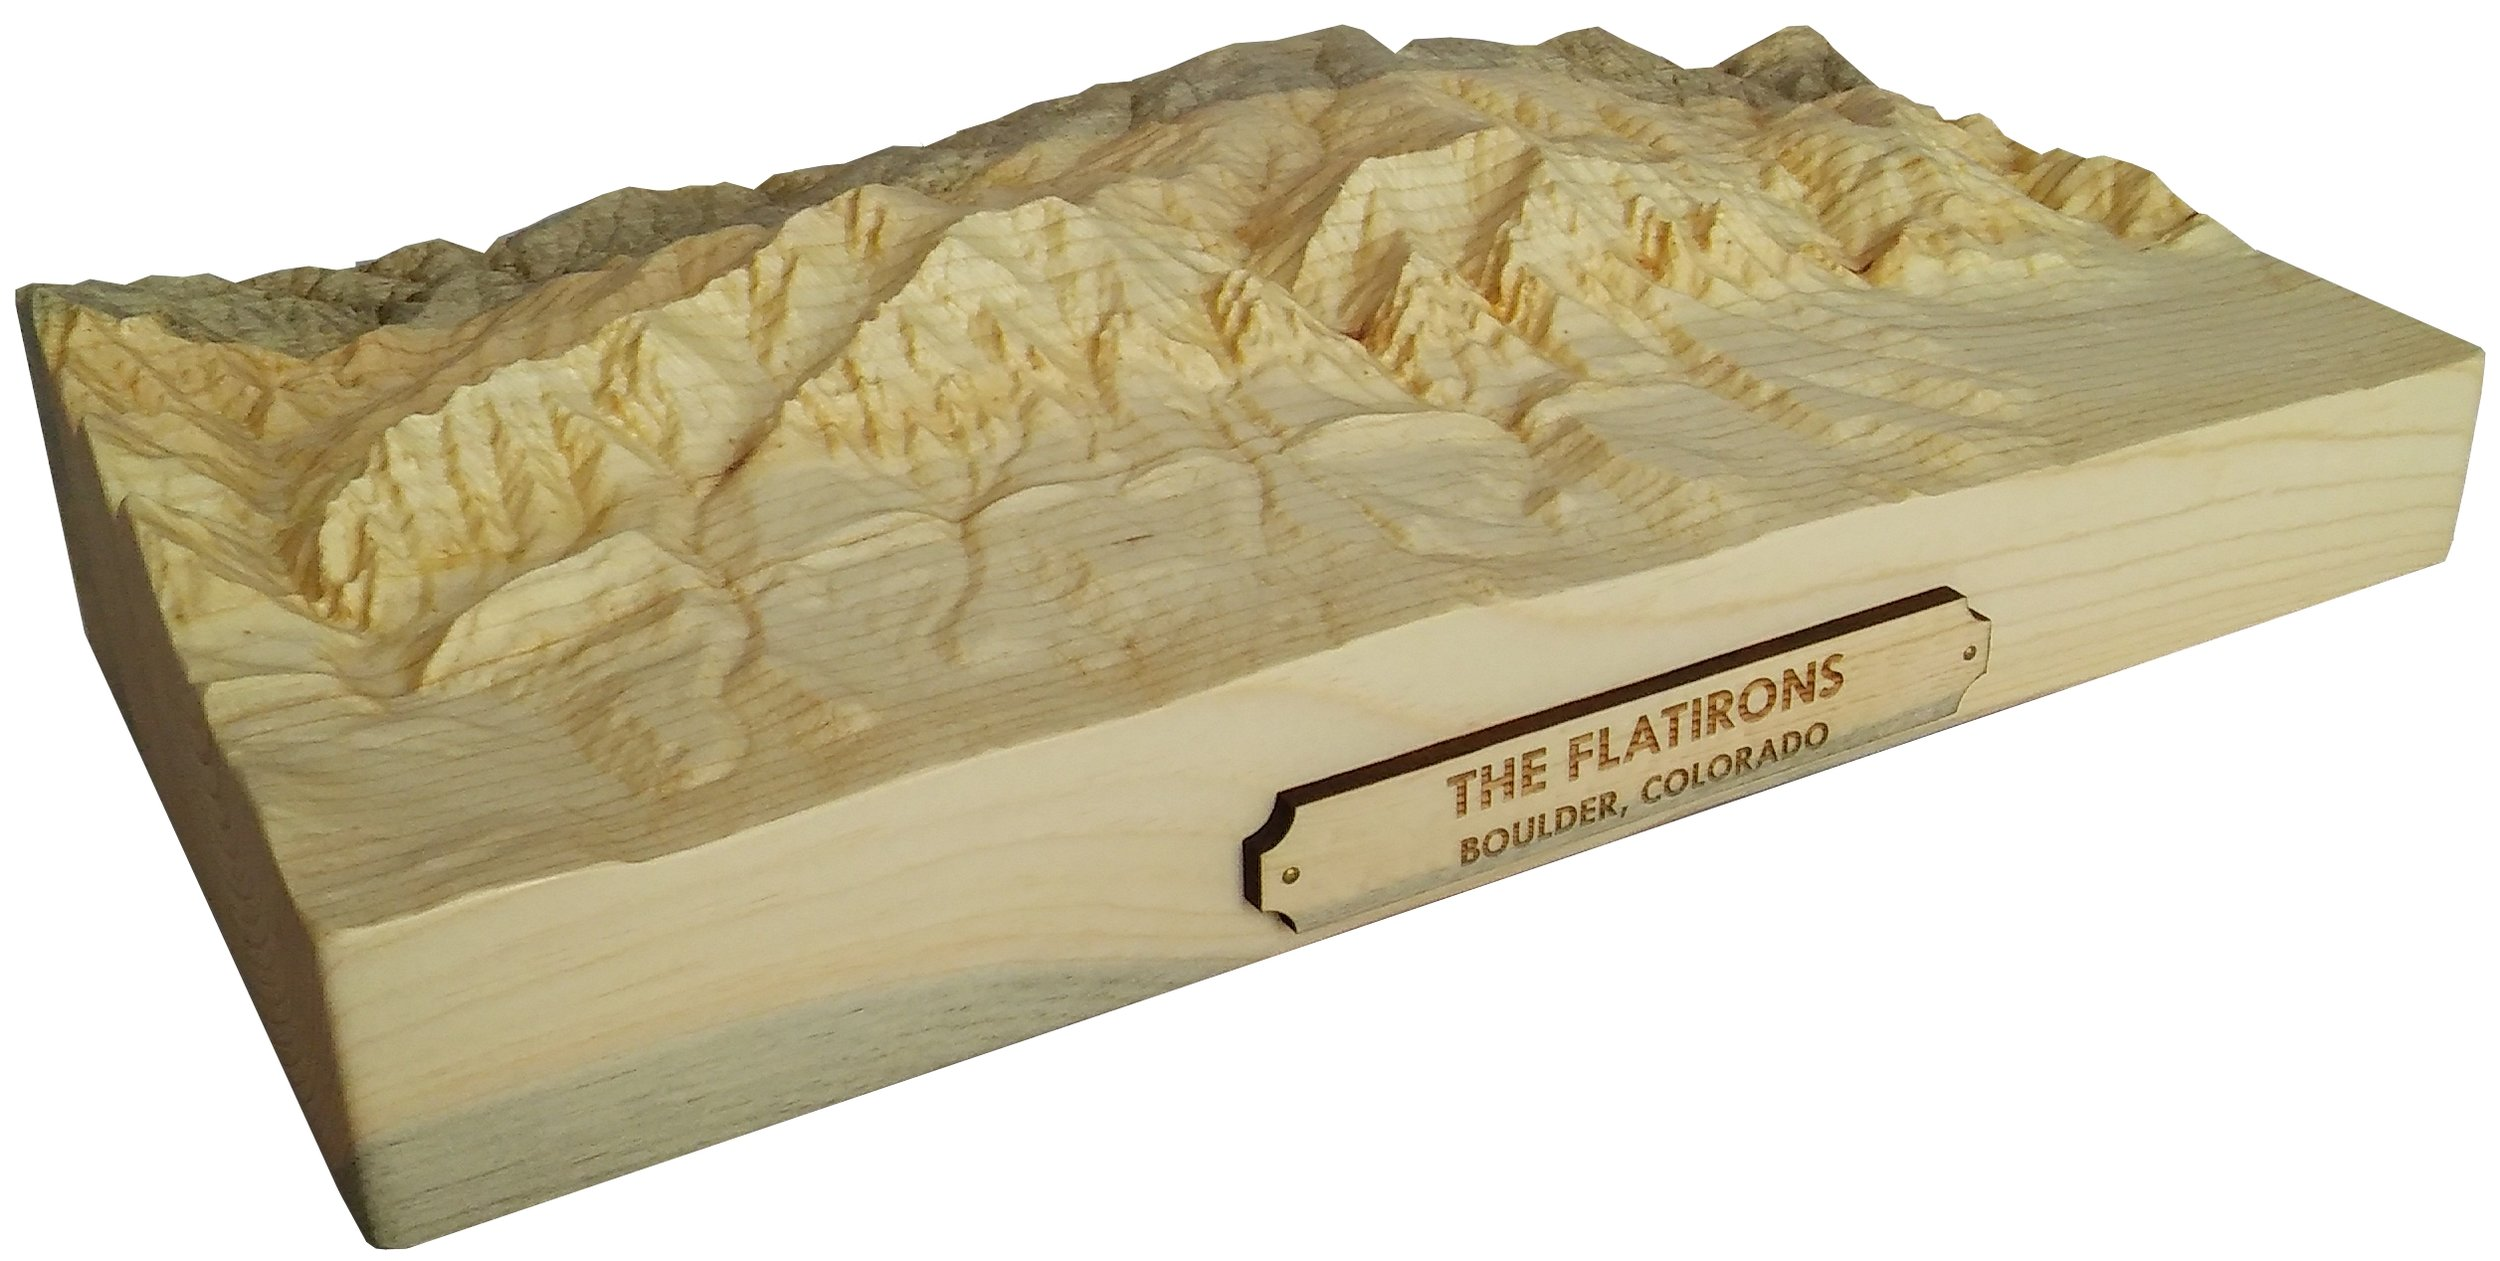 Flatirons_Large_Carving_Gift.jpg